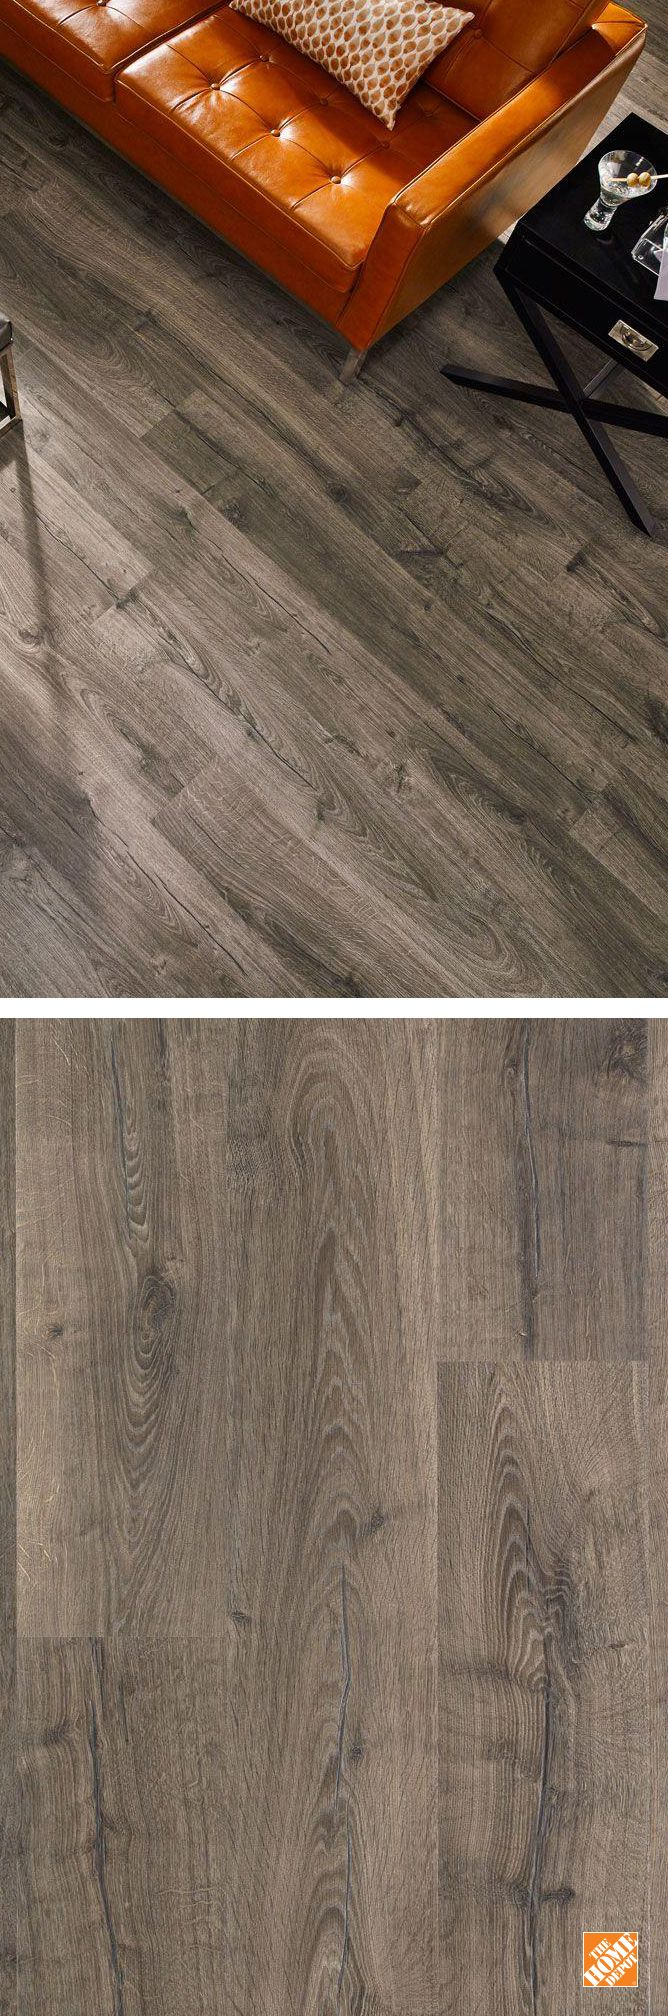 This Is Among The Most Advanced Laminate Flooring